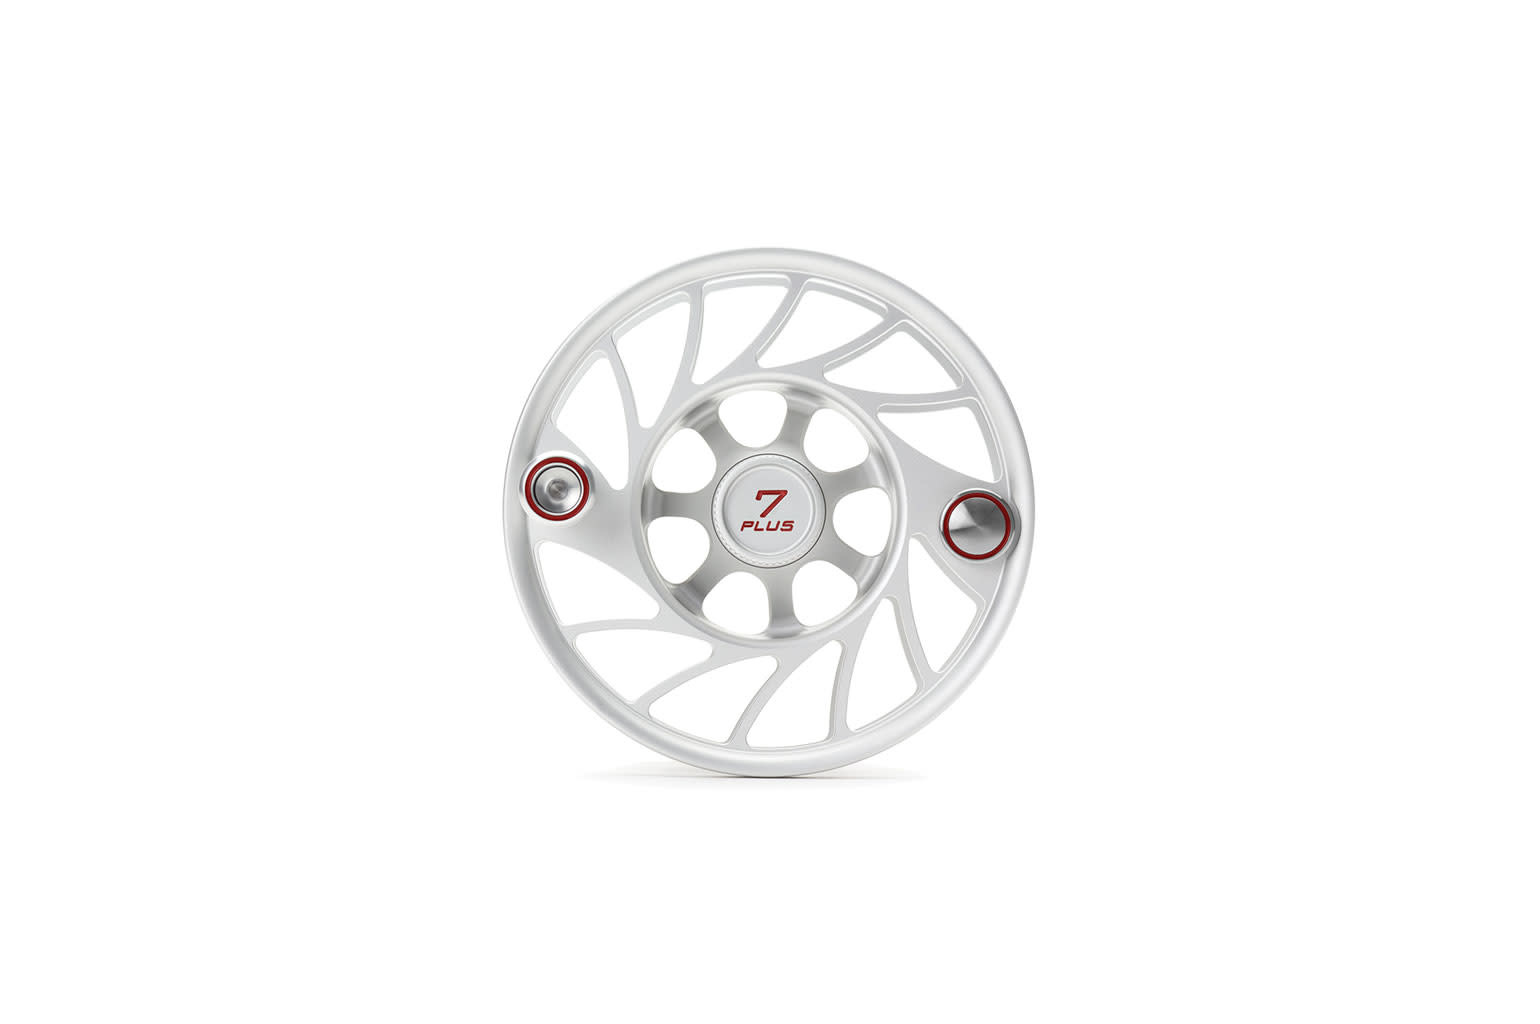 Hatch Hatch Gen 2 Finatic 7 Plus Extra Spool MA